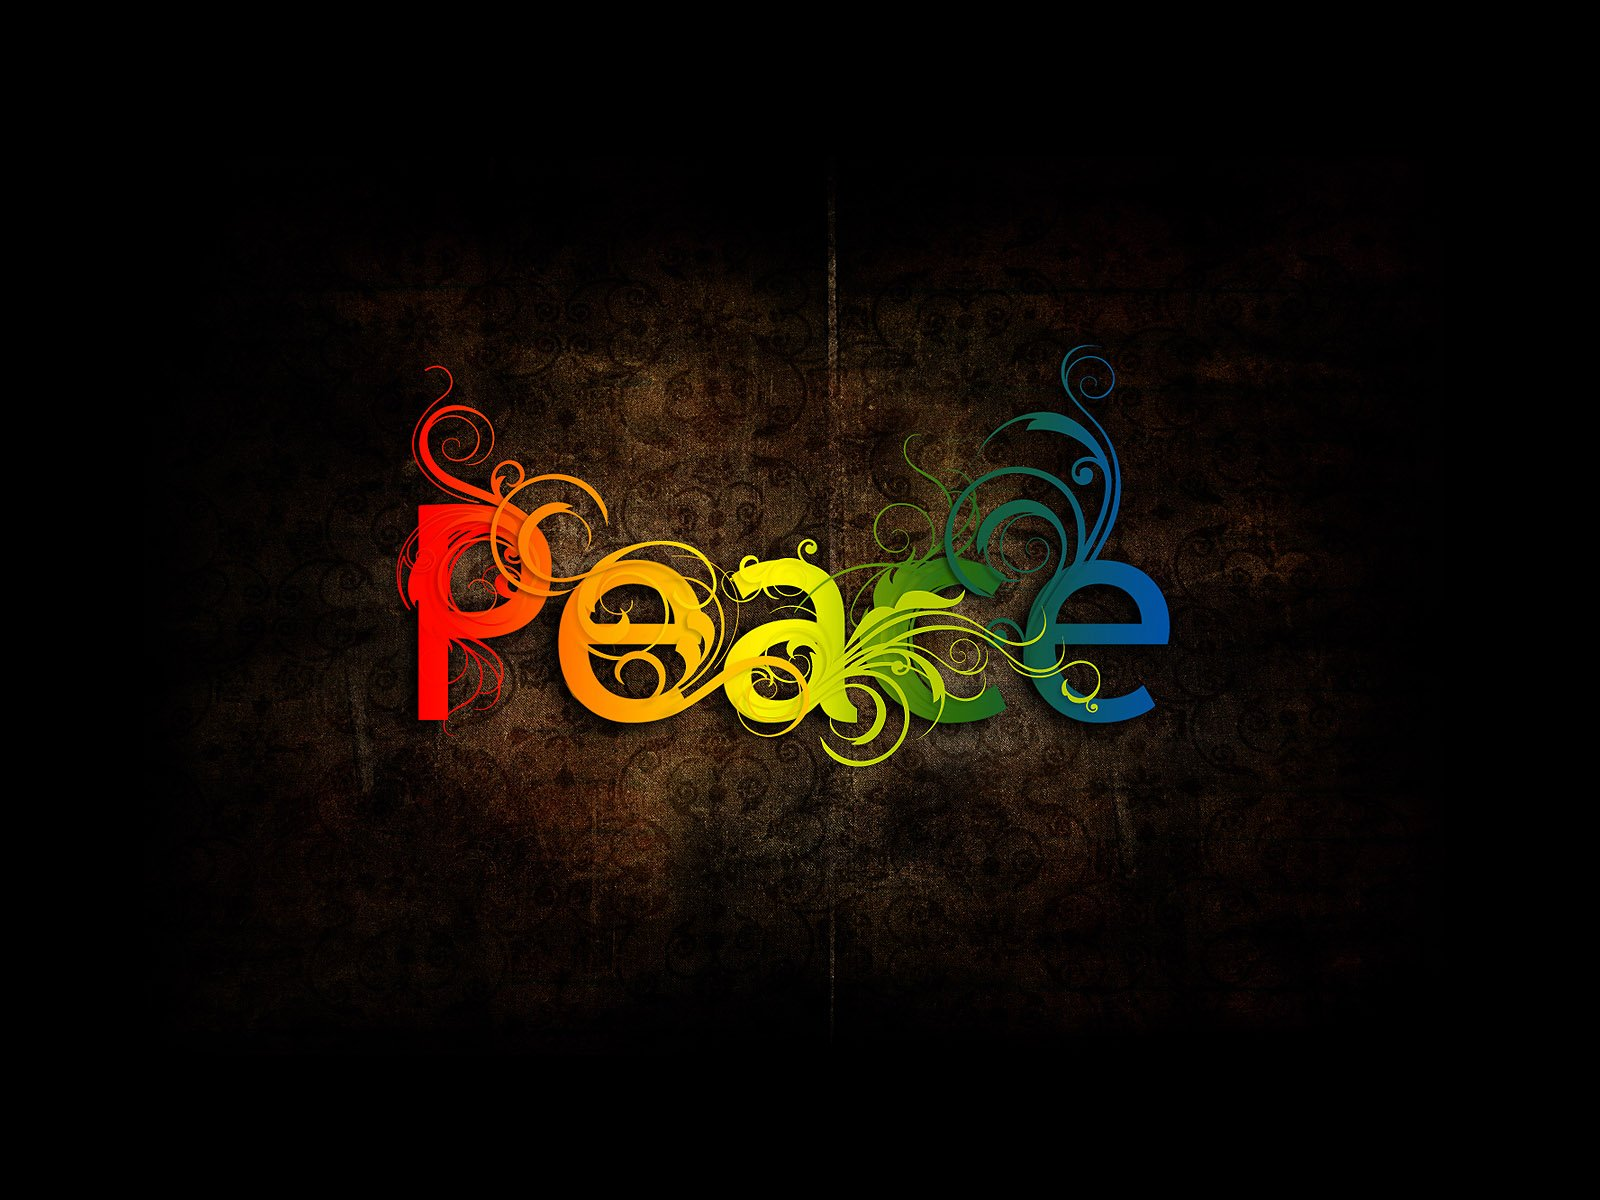 70 Misc Wallpapers HD Wallpaper Peace I write a lot 1600x1200